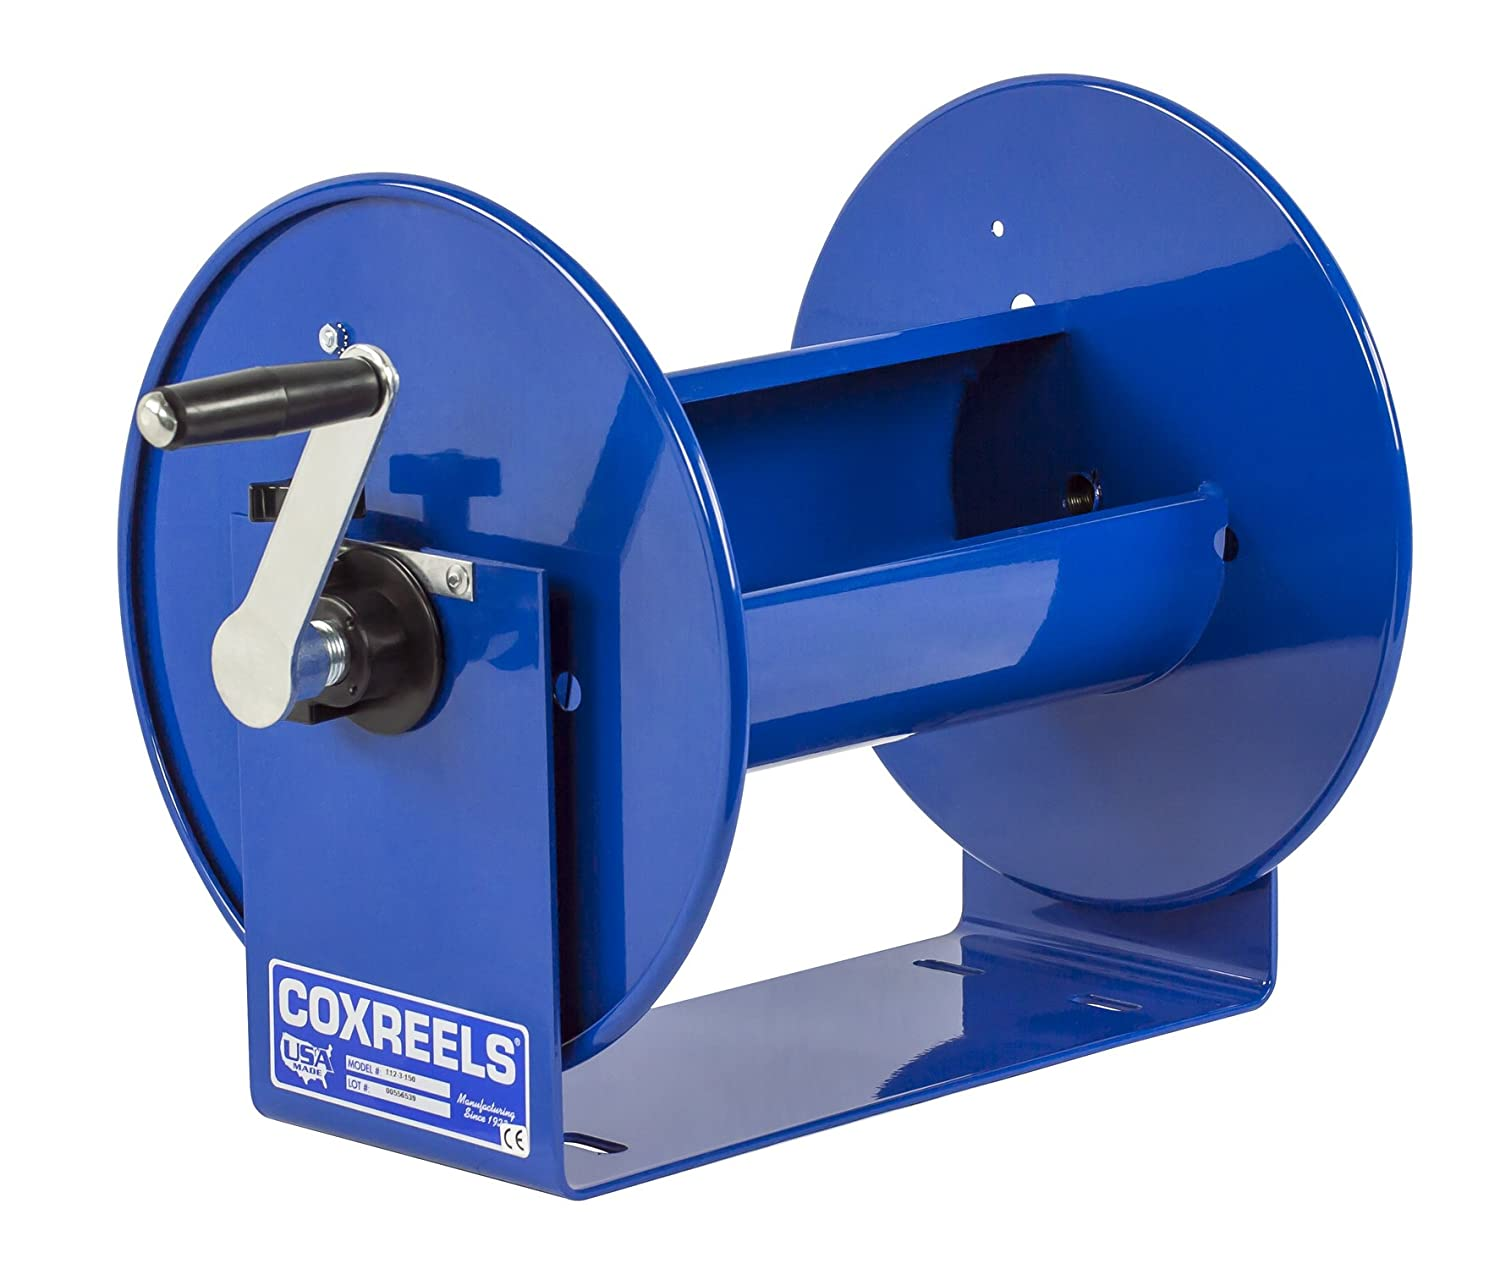 "Coxreels 117-4-225 Compact Hand Crank Hose Reel, 4,000 PSI, Holds 1/2"" x 225' Length Hose, Hose Not Included"